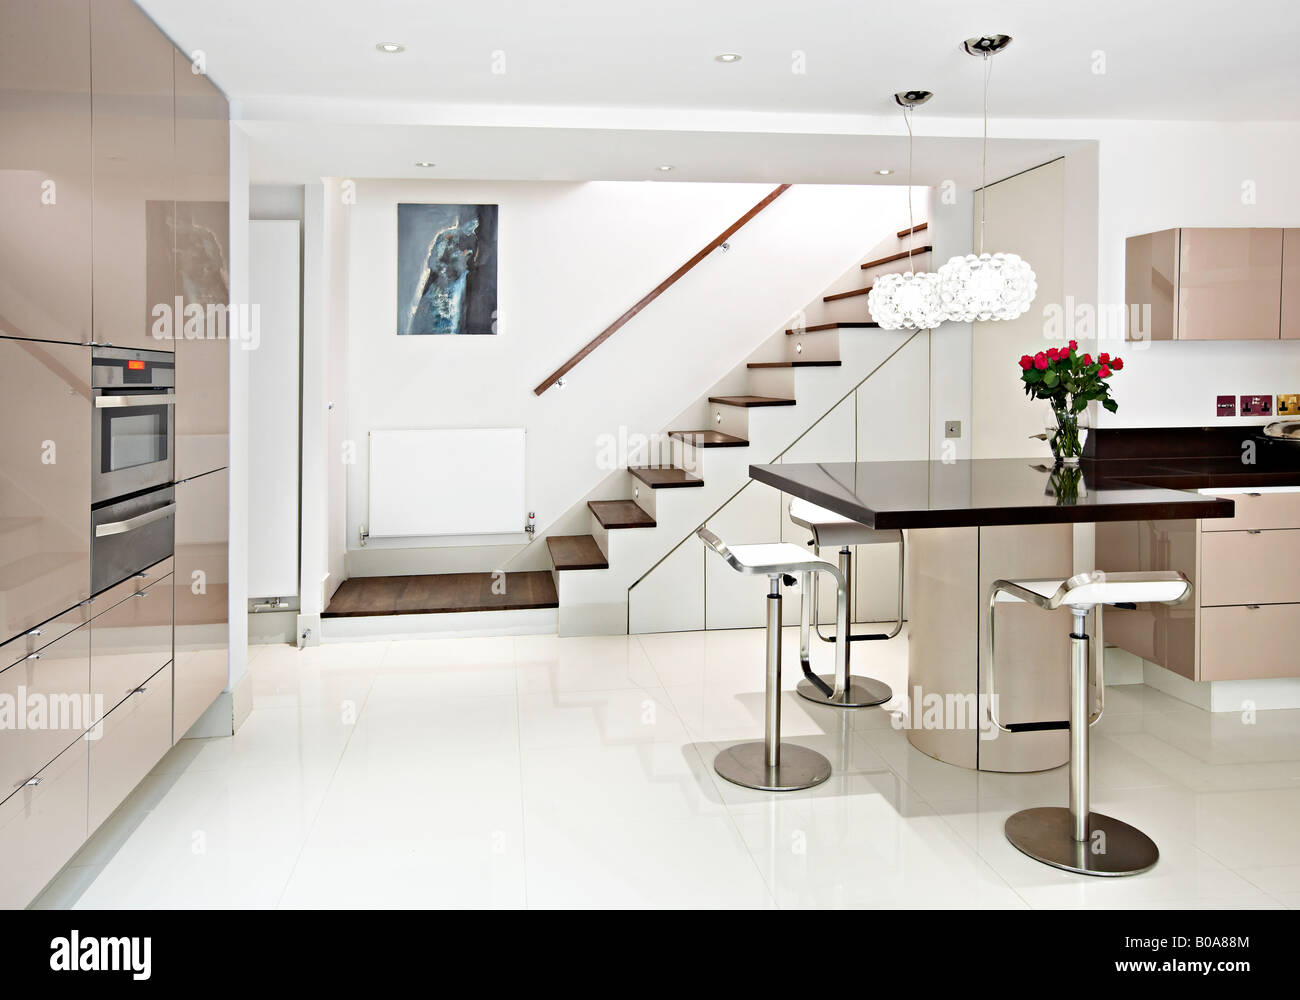 modern kitchen stairs stock photo, royalty free image: 17436404